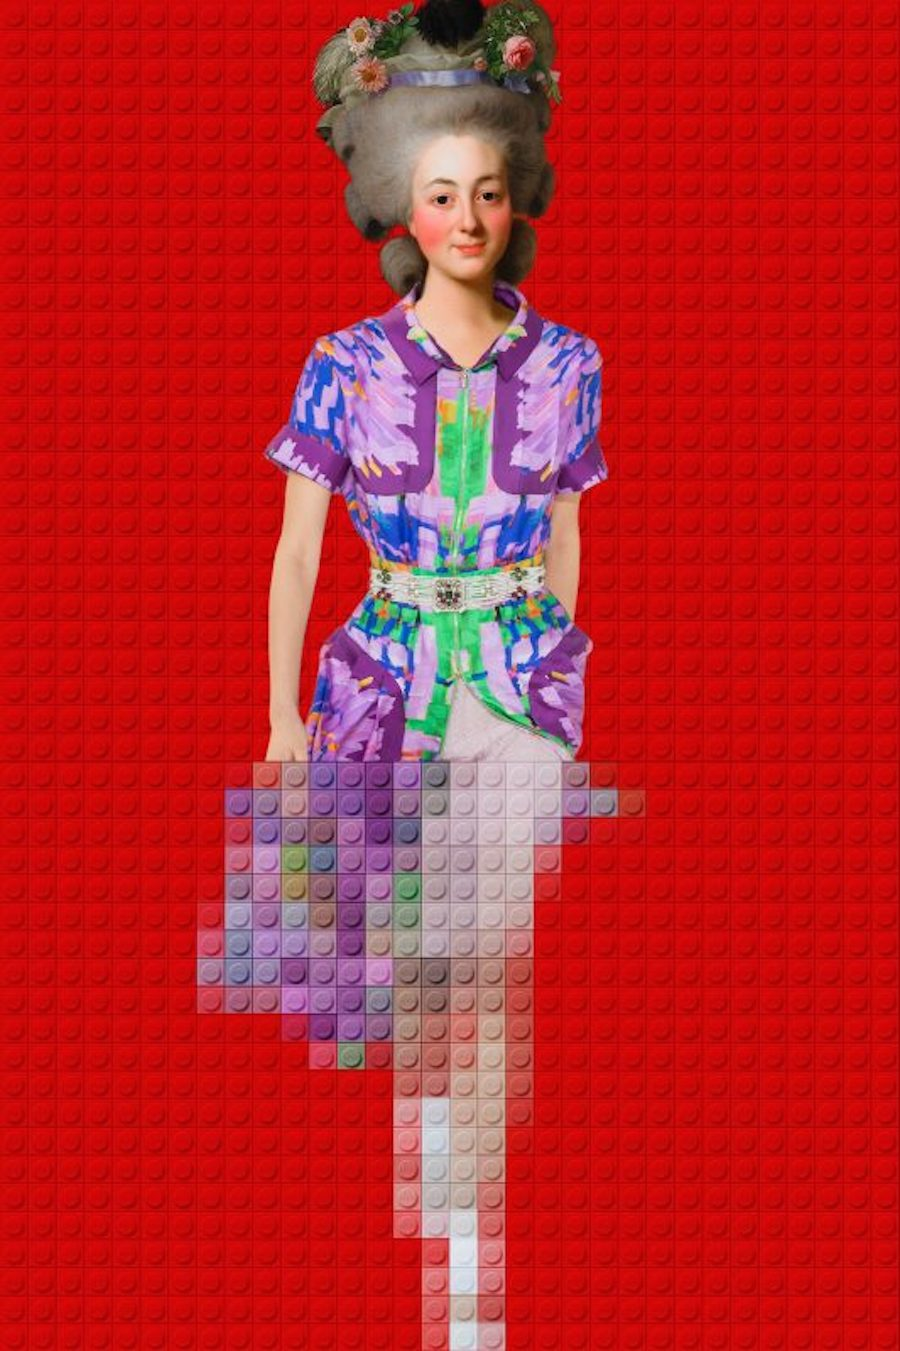 Dazzling Mix of LEGO and Fashion